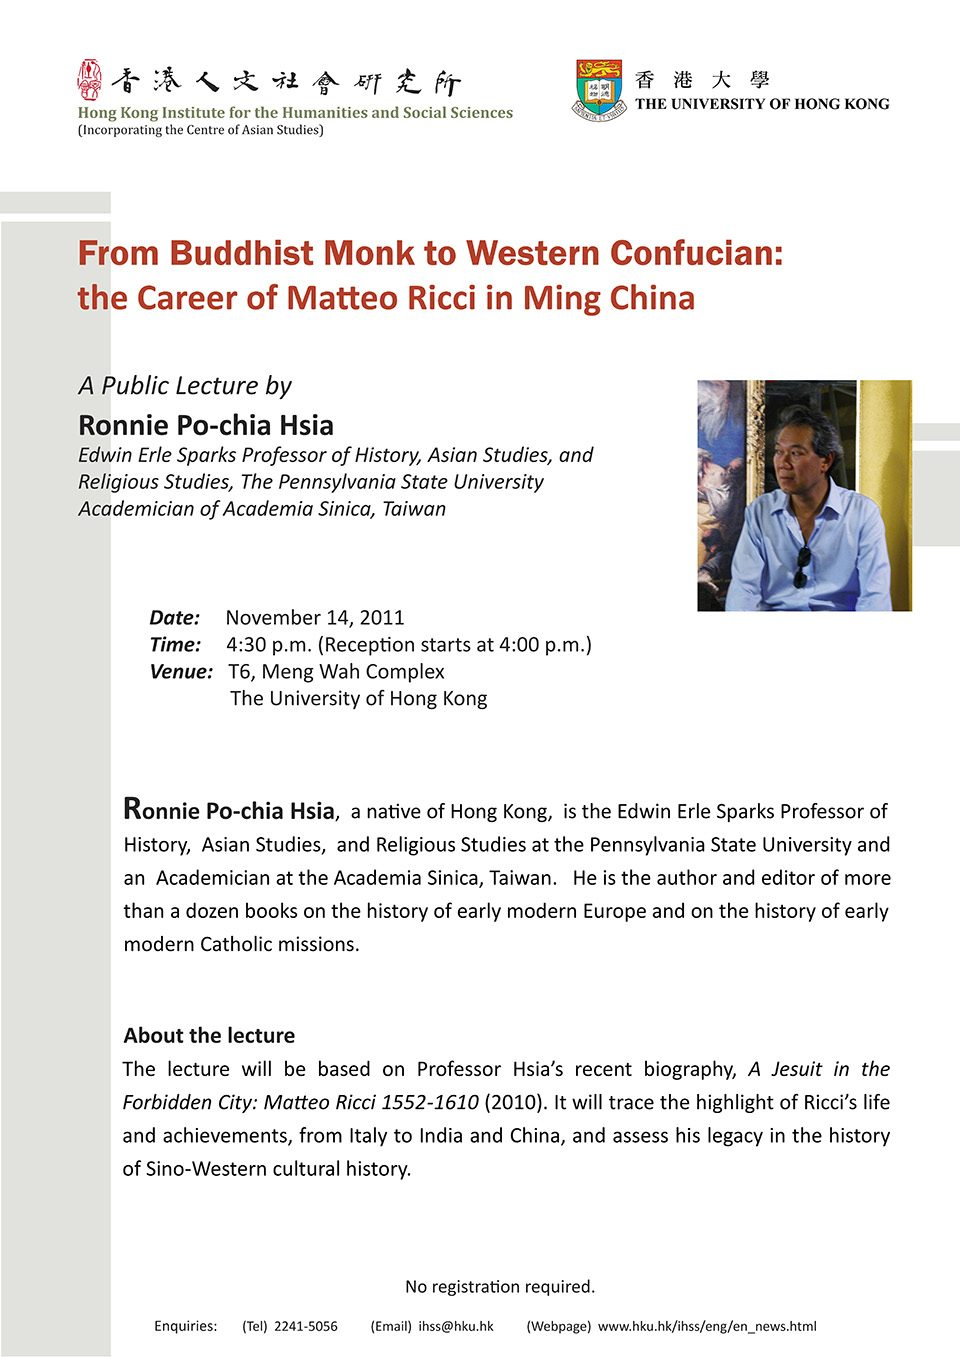 "Distinguished Lecture on ""From Buddhist Monk to Western Confucian: the Career of Matteo Ricci in Ming China"" by Professor Ronnie Po-chia Hsia (November 14, 2011)"